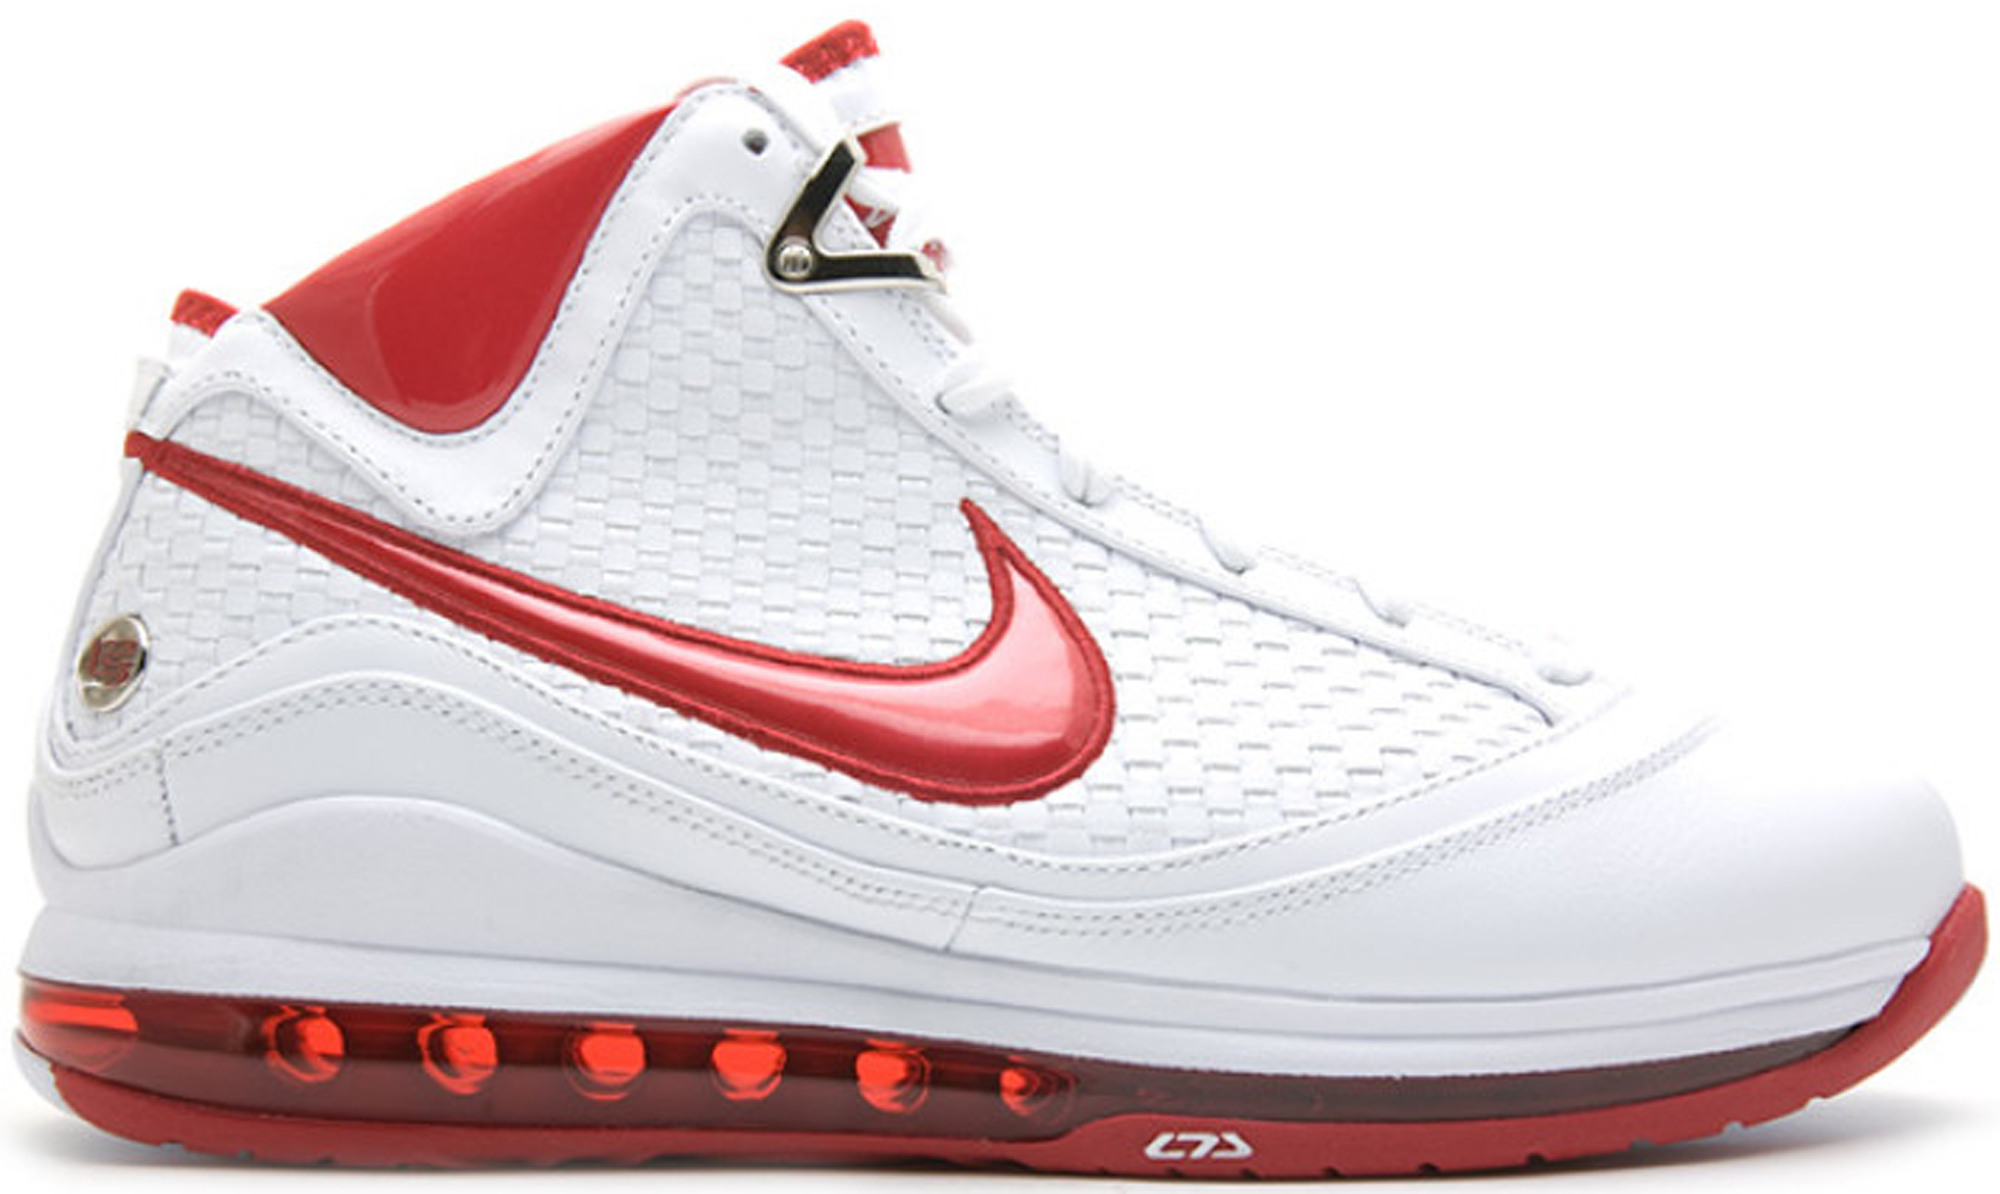 Nike LeBron 7 NFW (No Flywire) Sneakers (White/Varsity Red)